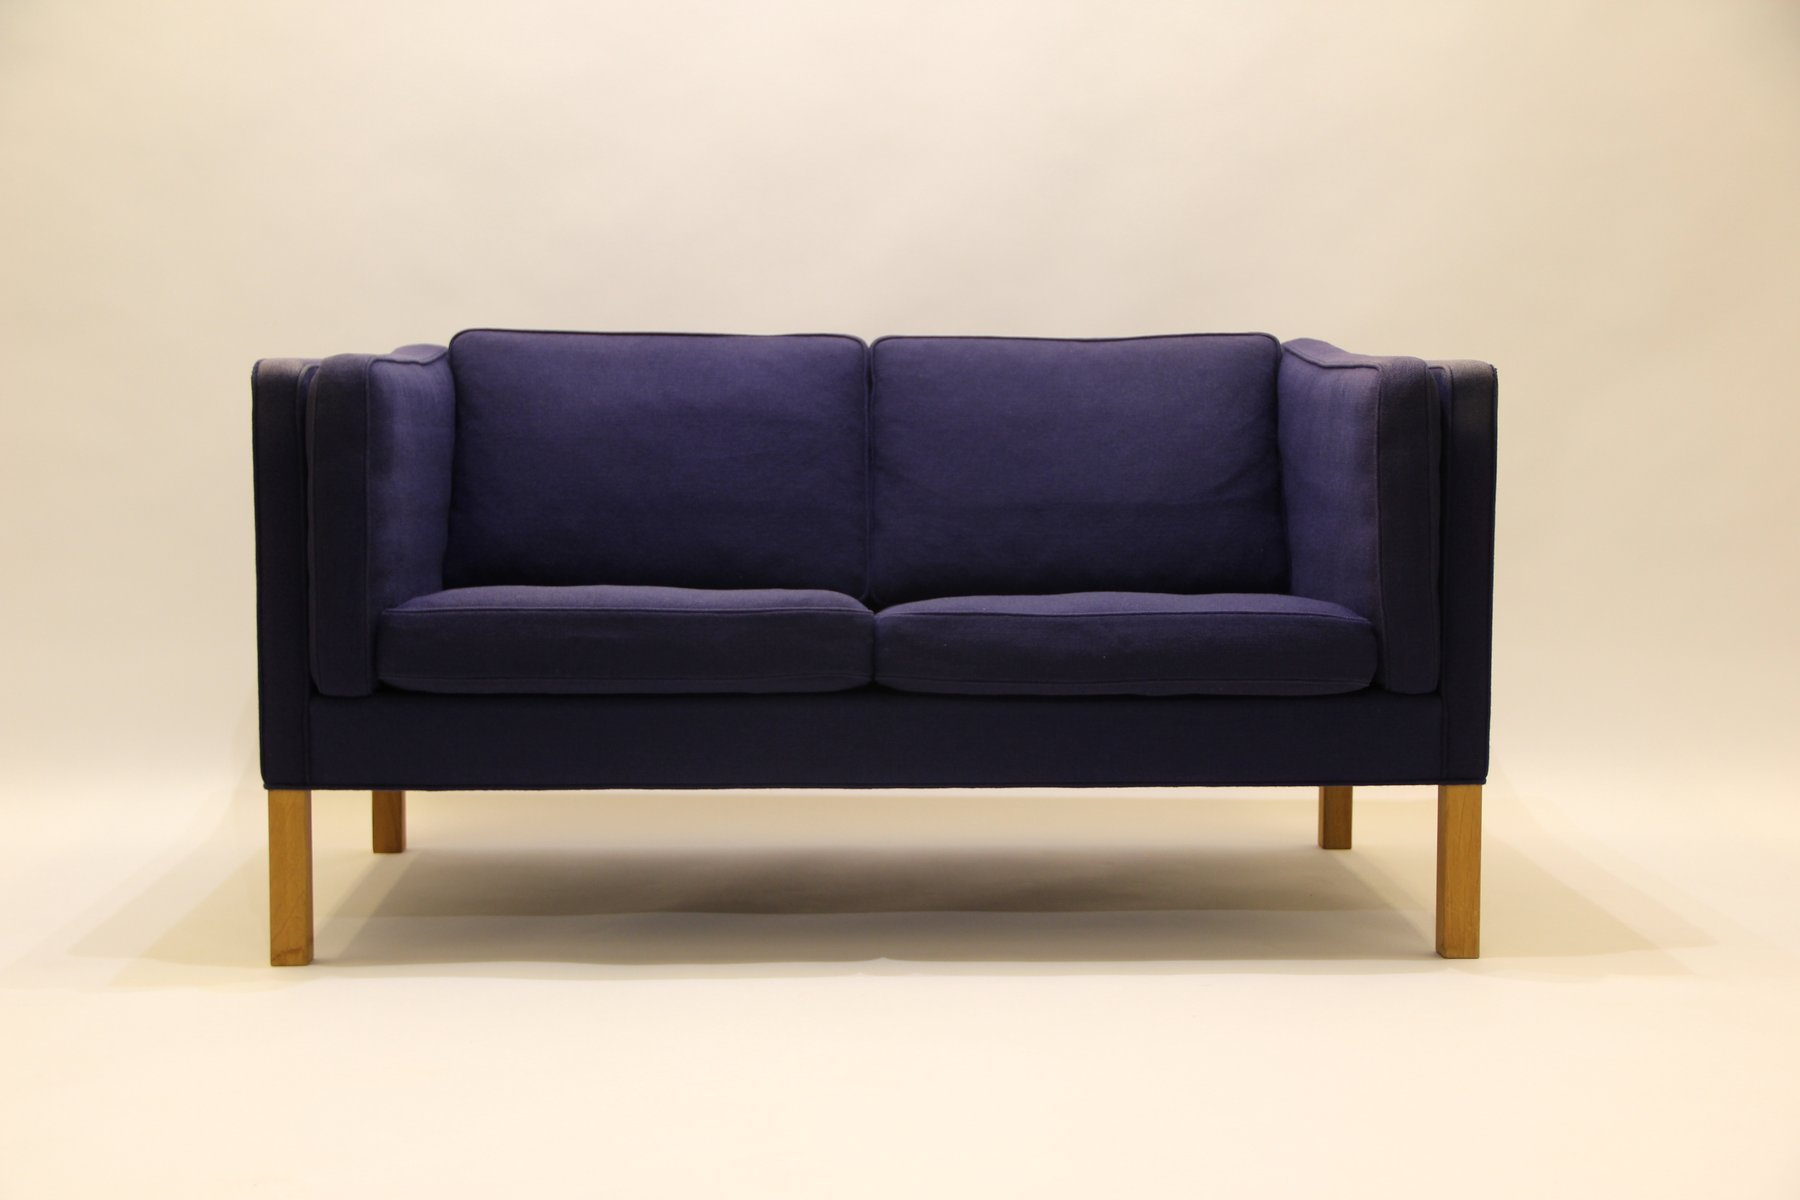 Vintage Model 2332 Sofa By Børge Mogensen For Fredericia